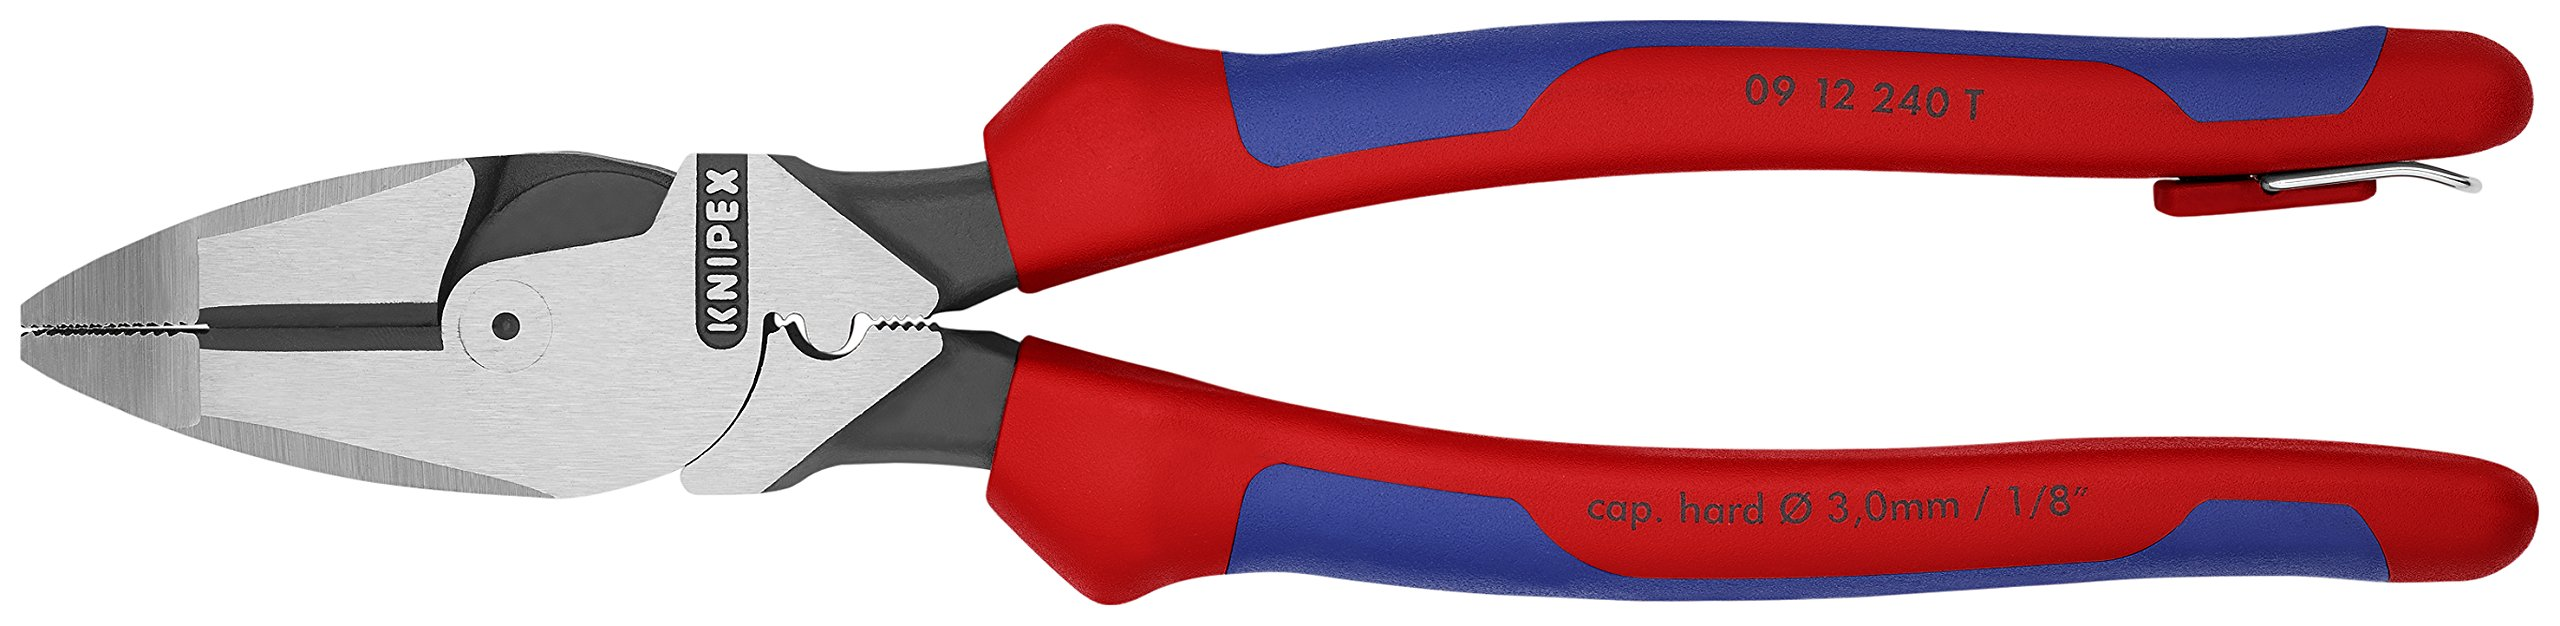 Knipex Tools 09 12 240 T BKA 9 1/4'' Ultra-High Leverage Lineman's Pliers with Fish Tape Puller, Crimper, Tether Attachment by KNIPEX Tools (Image #3)